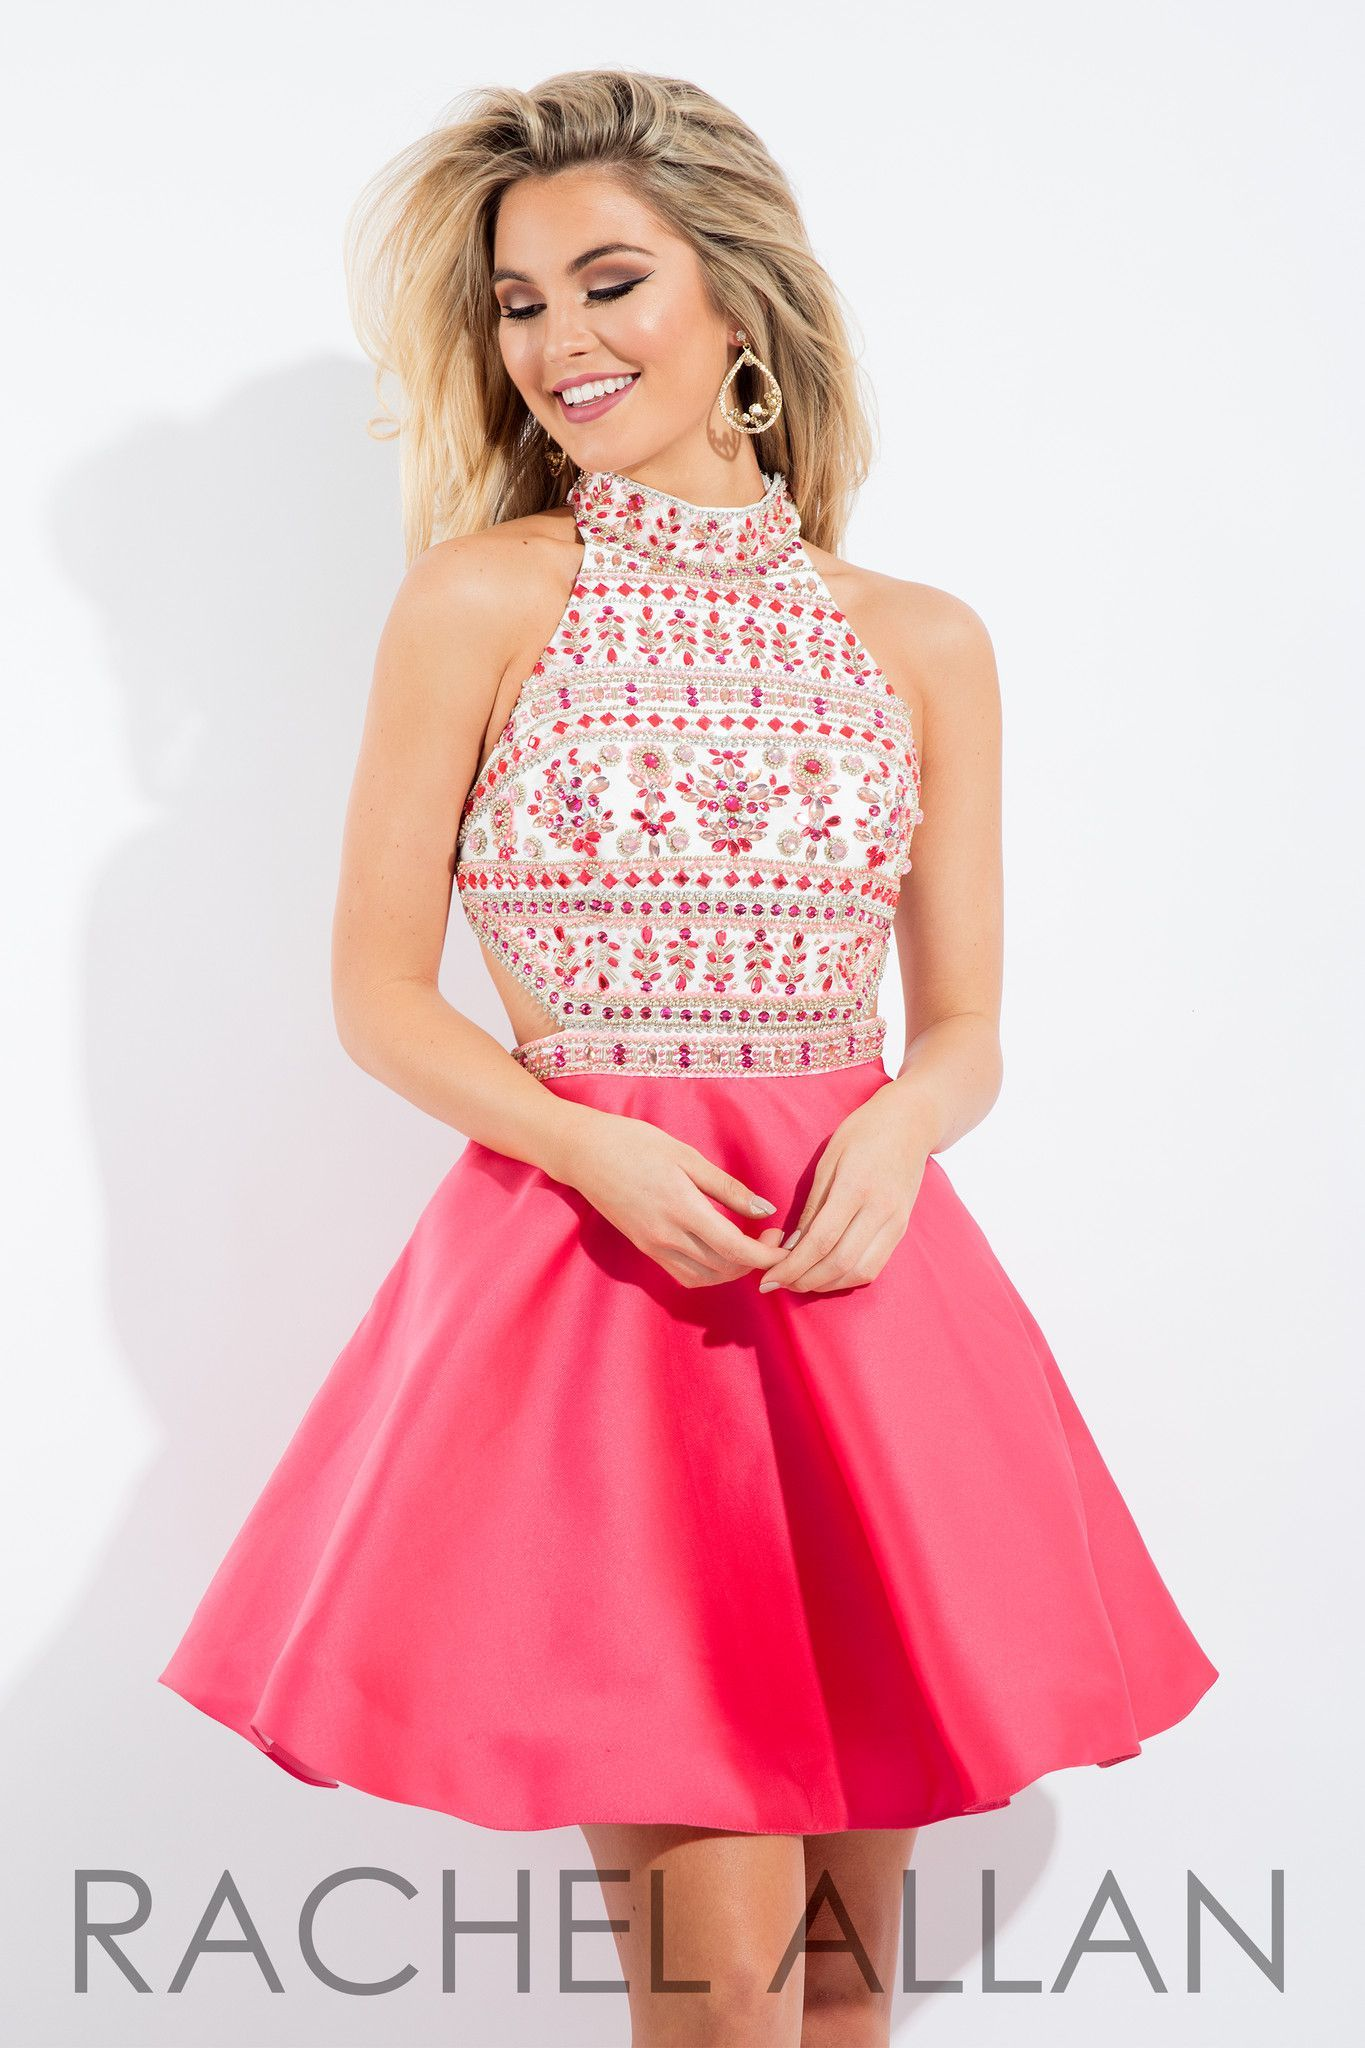 Rachel Allan 4219 White/Coral Homecoming Dress | costura | Pinterest ...